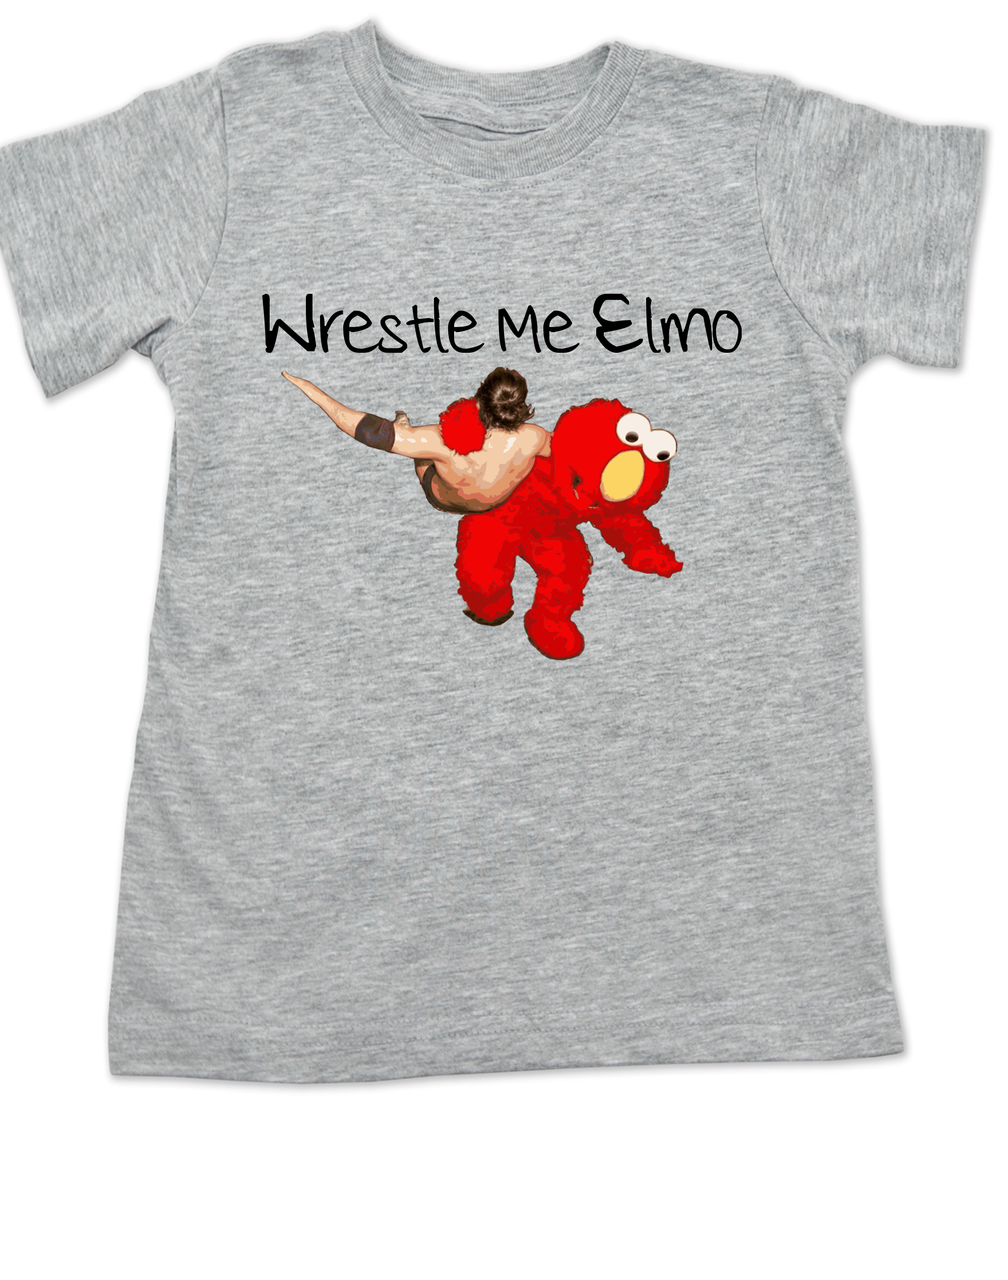 Wrestle Me Elmo Toddler Shirt